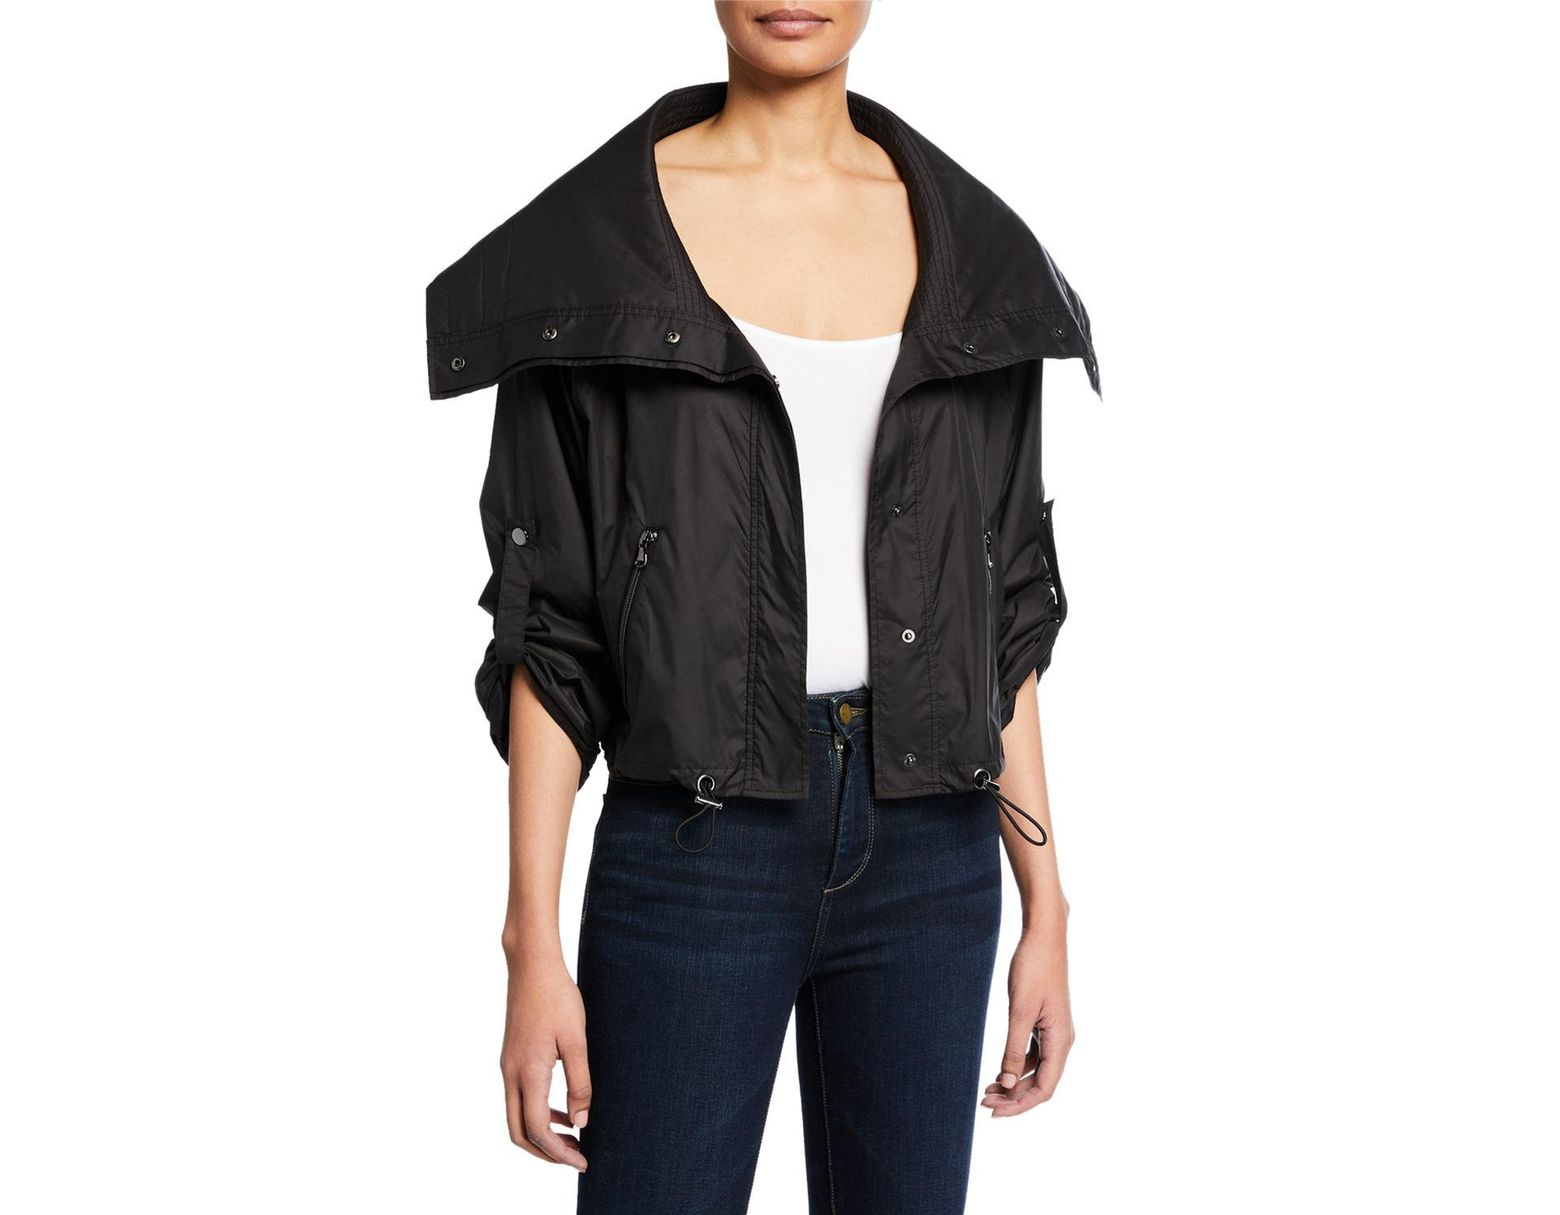 8f87778d Anatomie Casey Metallic Cropped Jacket in Black - Save 45% - Lyst